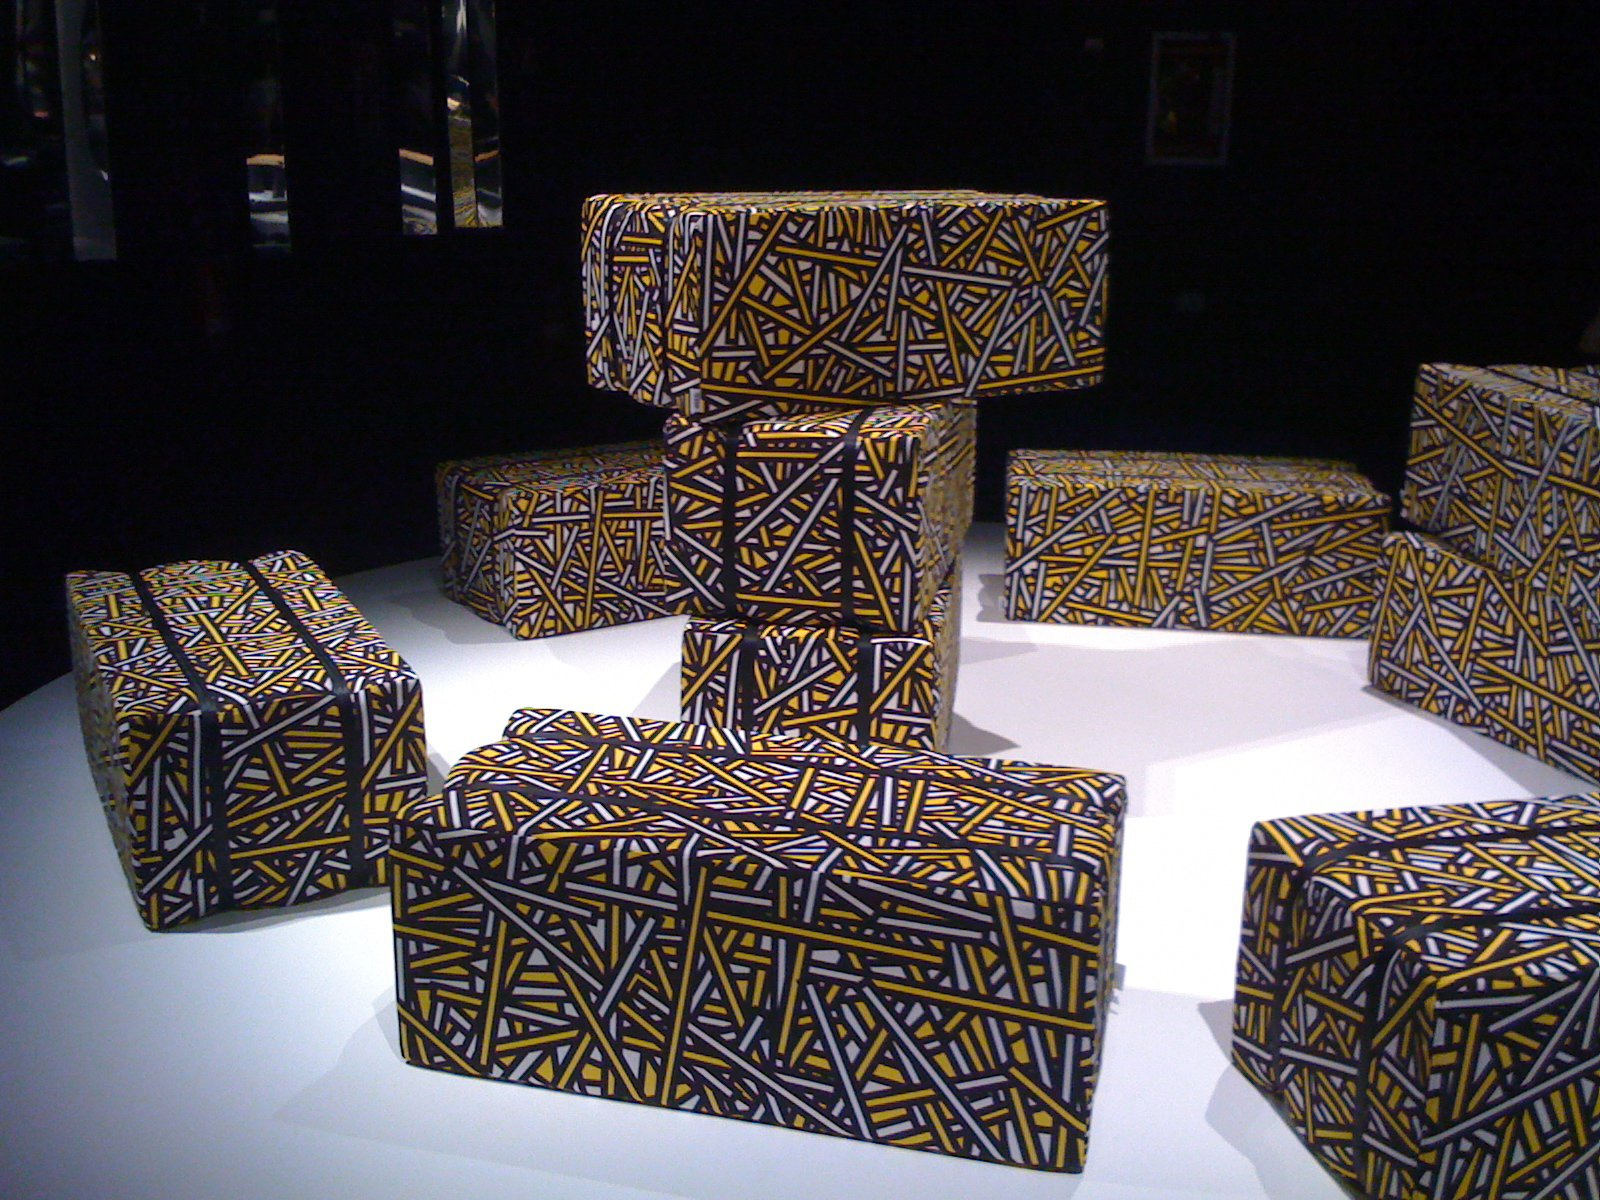 After lunch we traipsed over to the Teatro Versace to see a showcase of new designs from Established & Sons. Among the offerings was Haystack, a graphic and pliable seating option by Richard Woods and Sebastian Wrong.  Milan 2011: Day One by Amanda Dameron